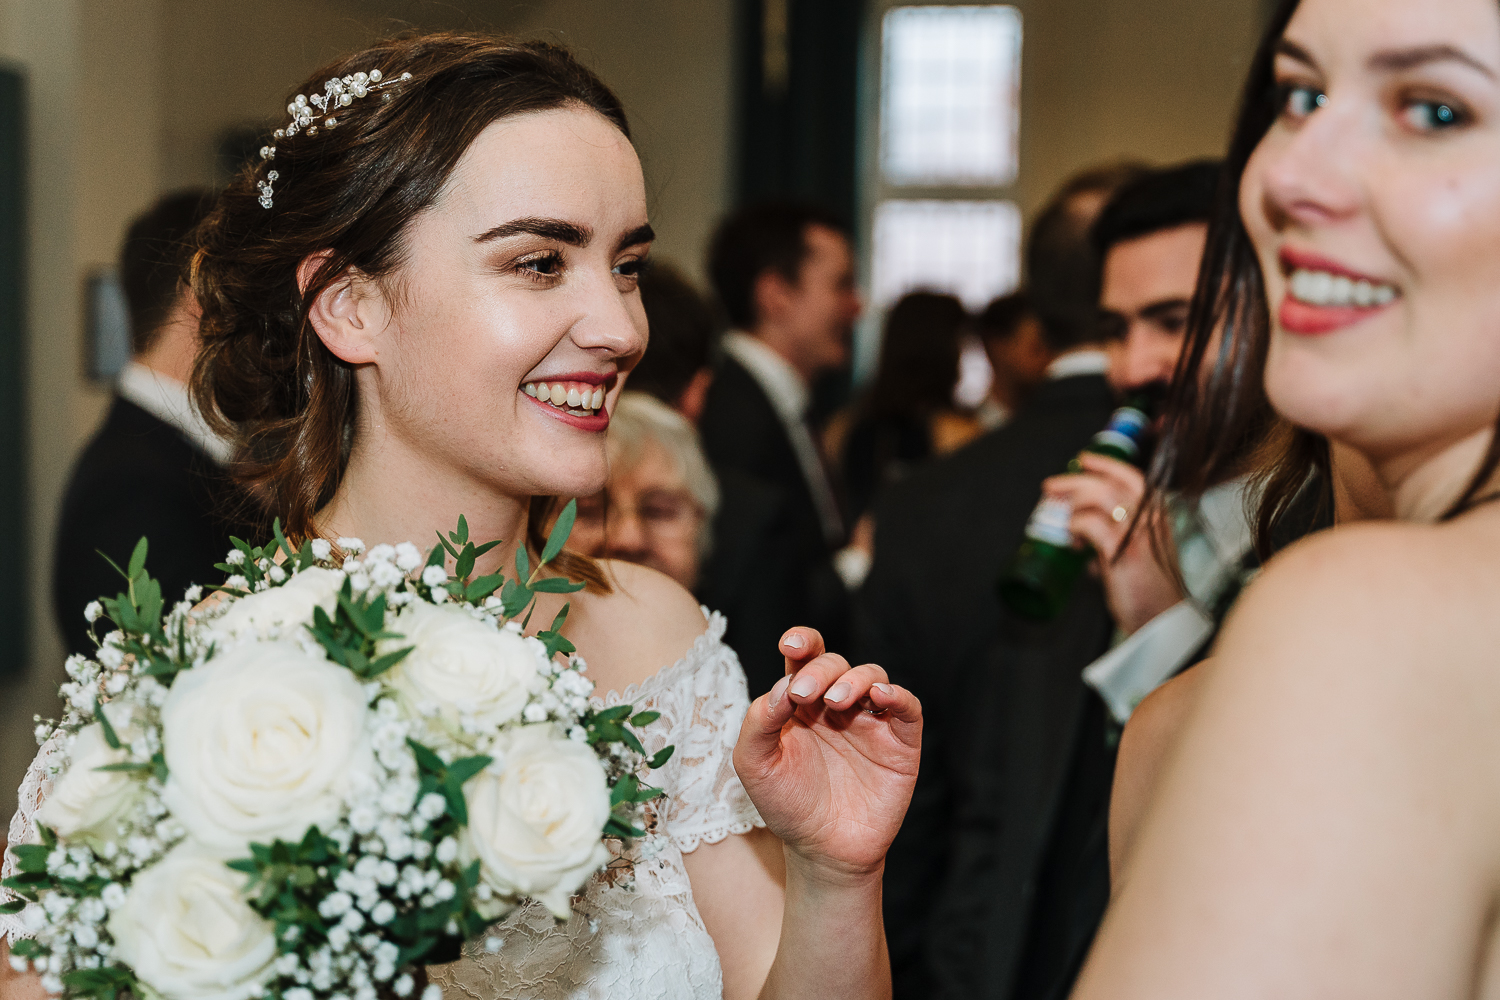 Bride smiling with guest